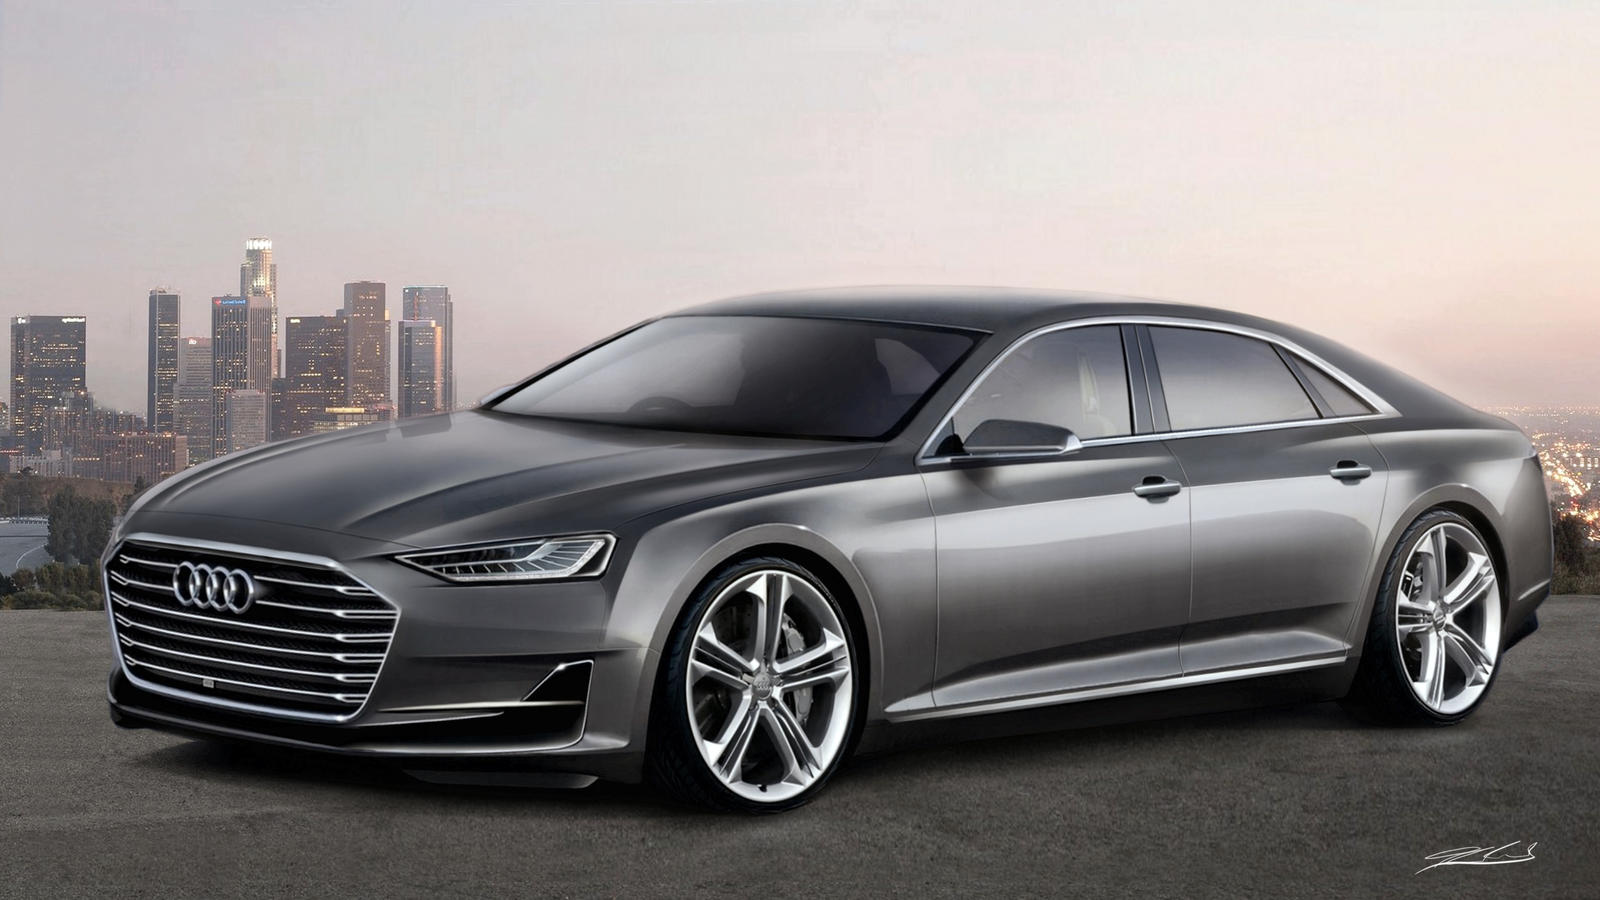 Audi A8 2018 Concept By Thorsten Krisch On Deviantart